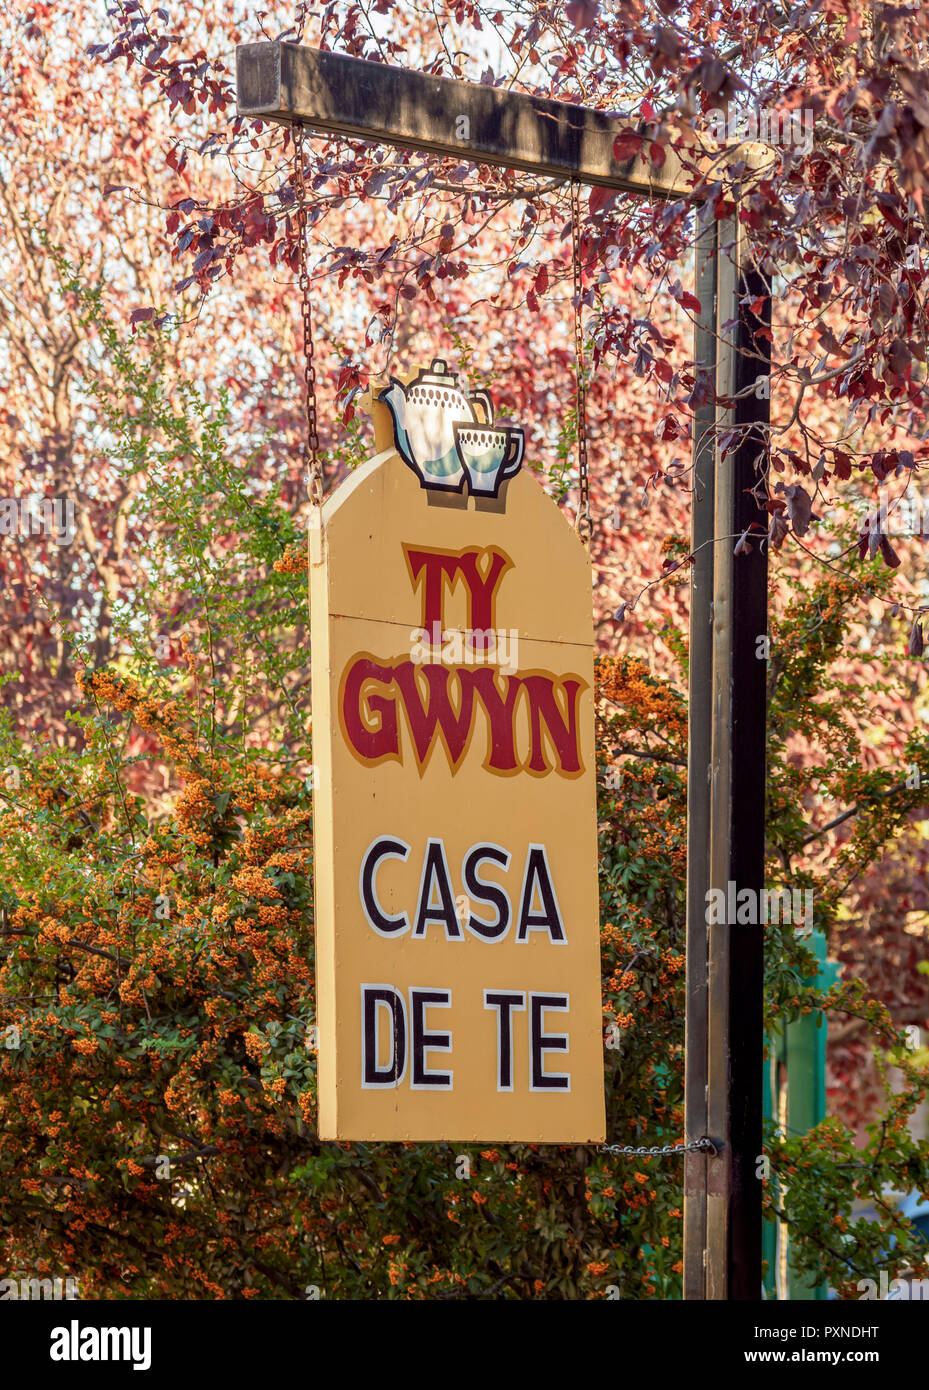 Welsh Tea House Ty Gwyn, Gaiman, The Welsh Settlement, Chubut Province, Patagonia, Argentina - Stock Image